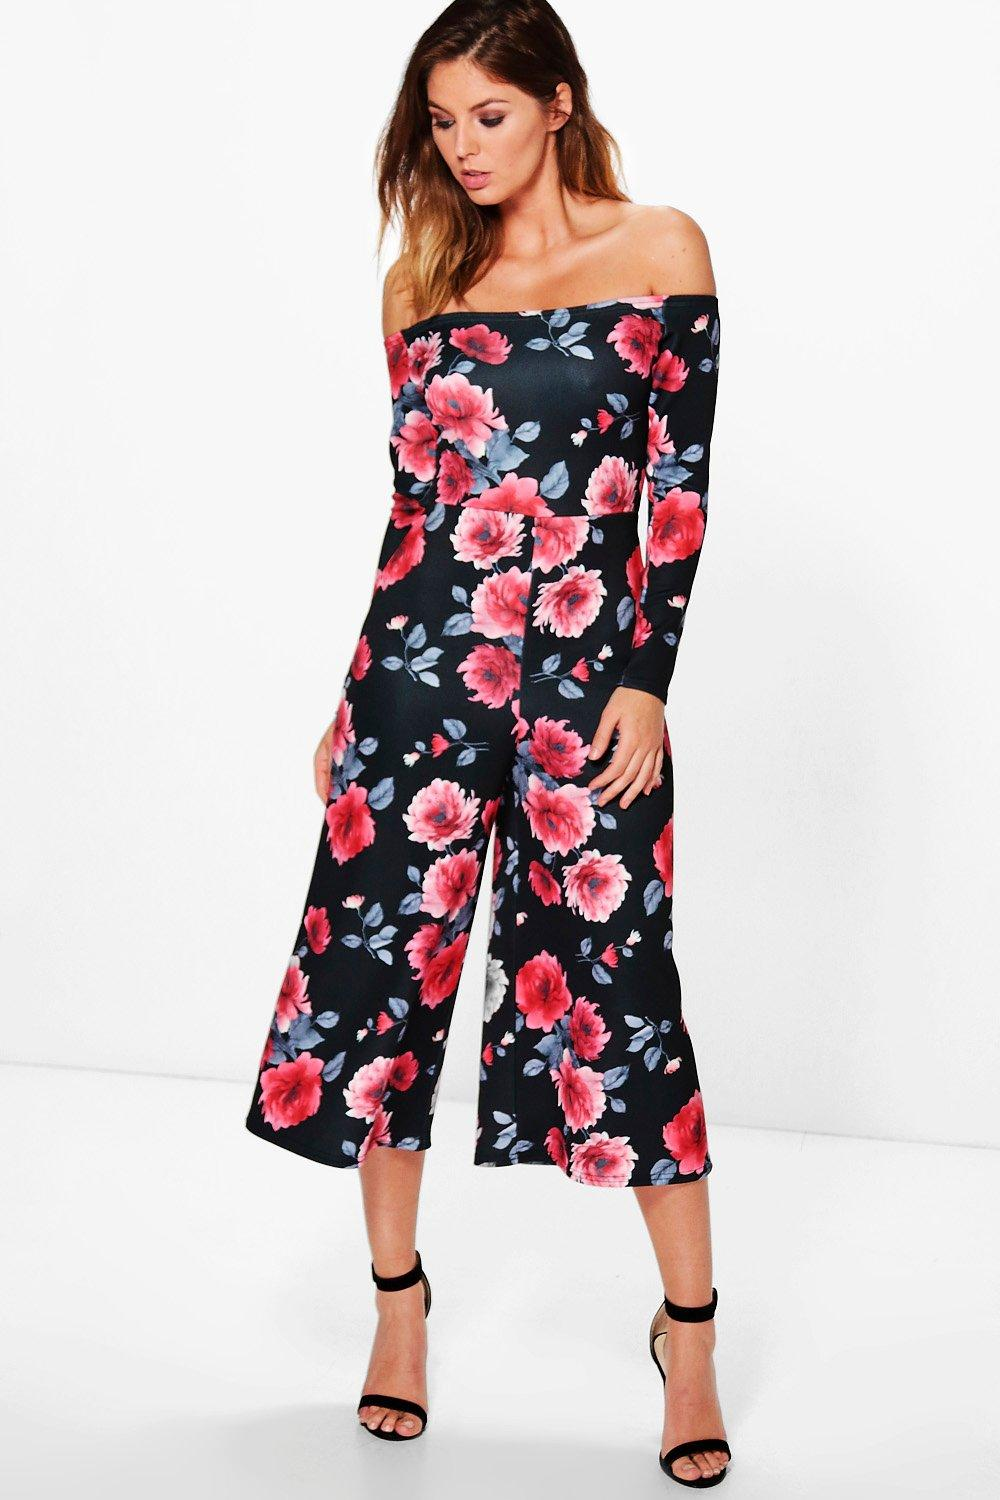 b93852a5cff Fia Bardot Floral Culotte Jumpsuit. Hover to zoom